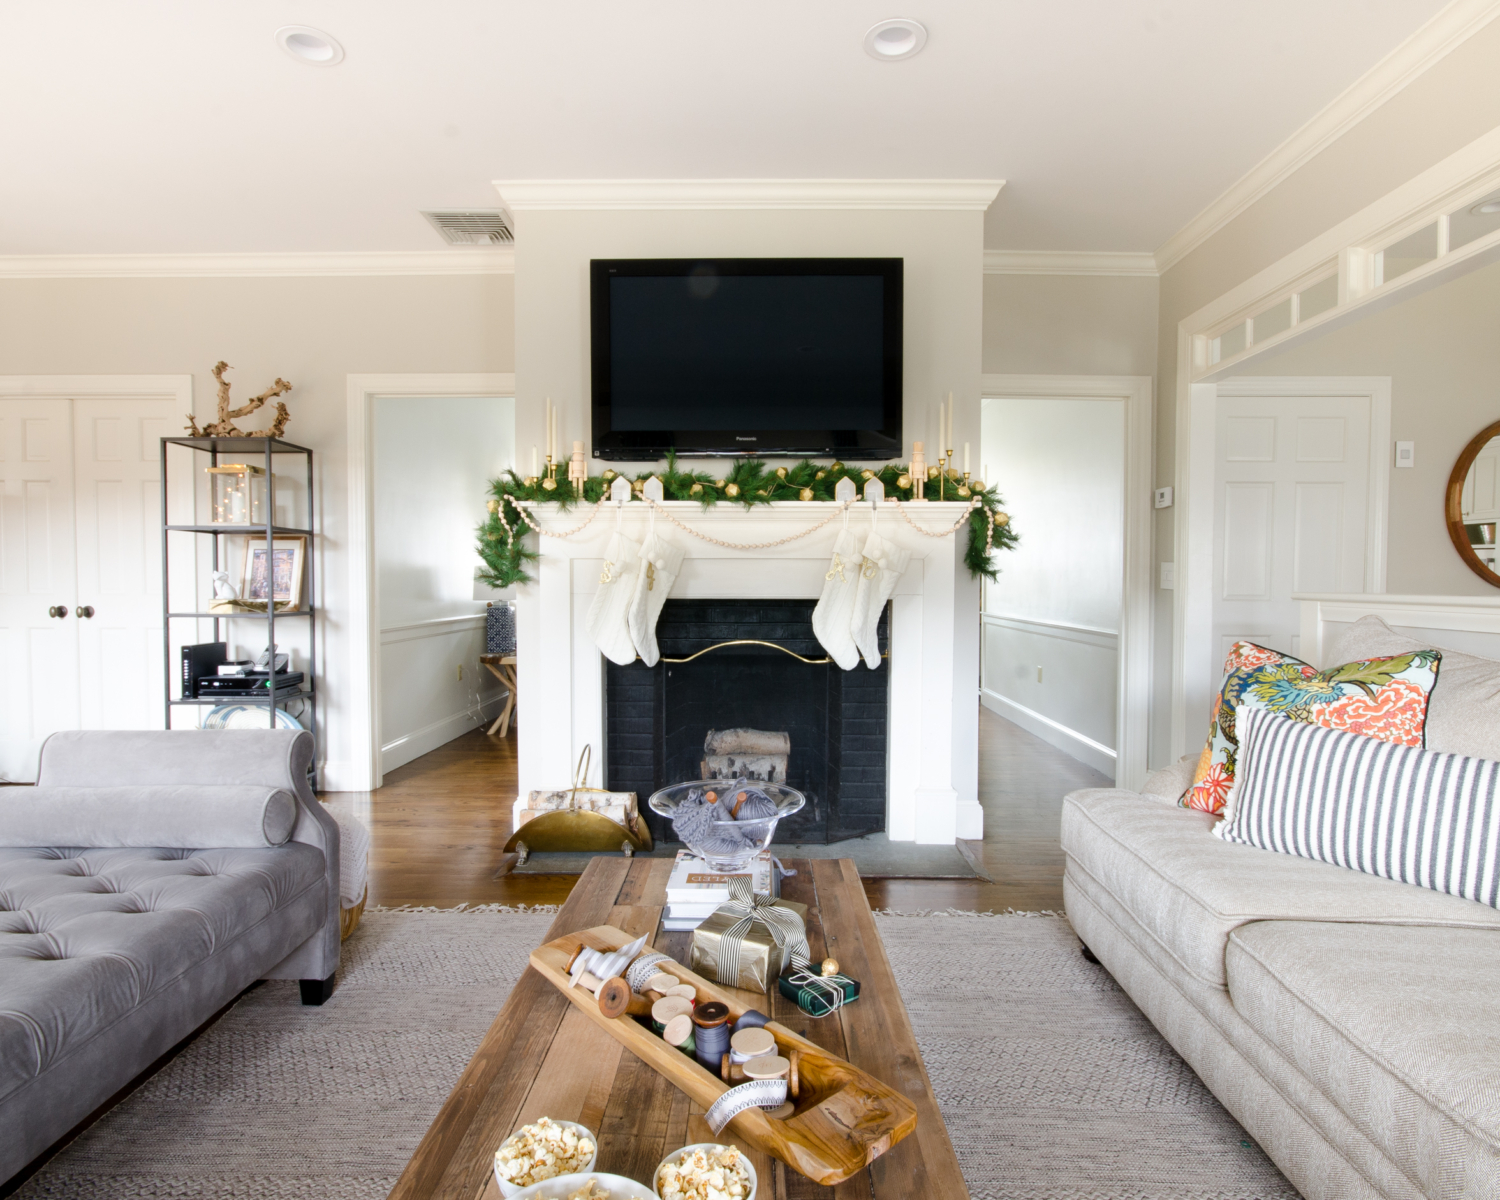 A simple and classic Christmas mantle with greenery, white cable knit stockings, nutcrackers, and gold accents. 2017 Holiday Housewalk